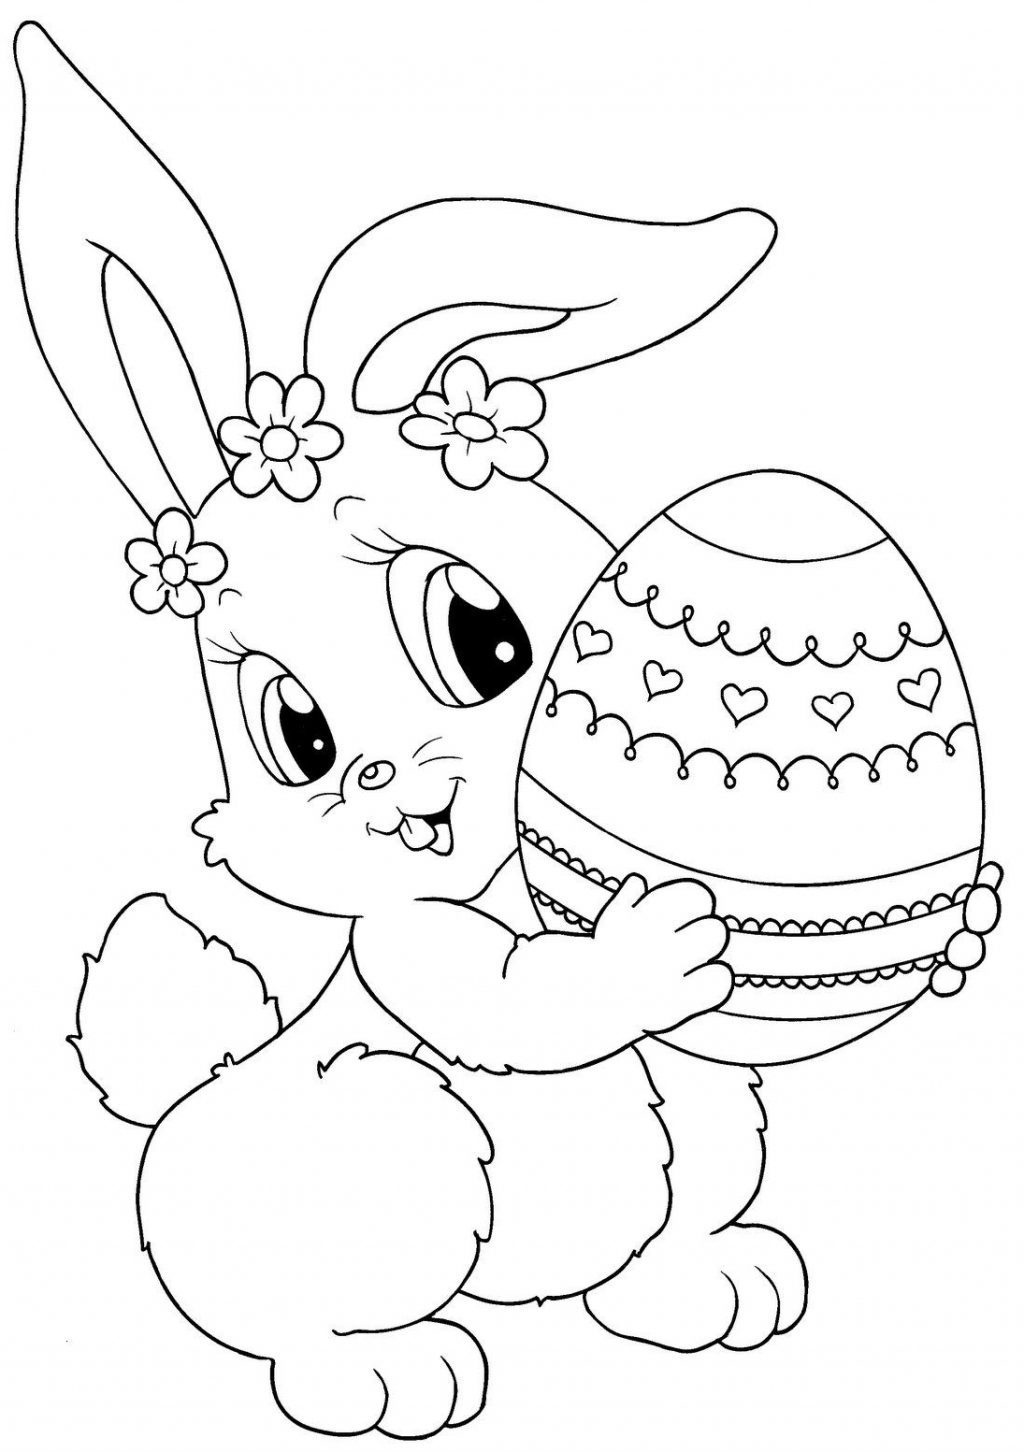 Coloring Page ~ Free Printable Easter Coloringes Extraordinary - Coloring Pages Free Printable Easter